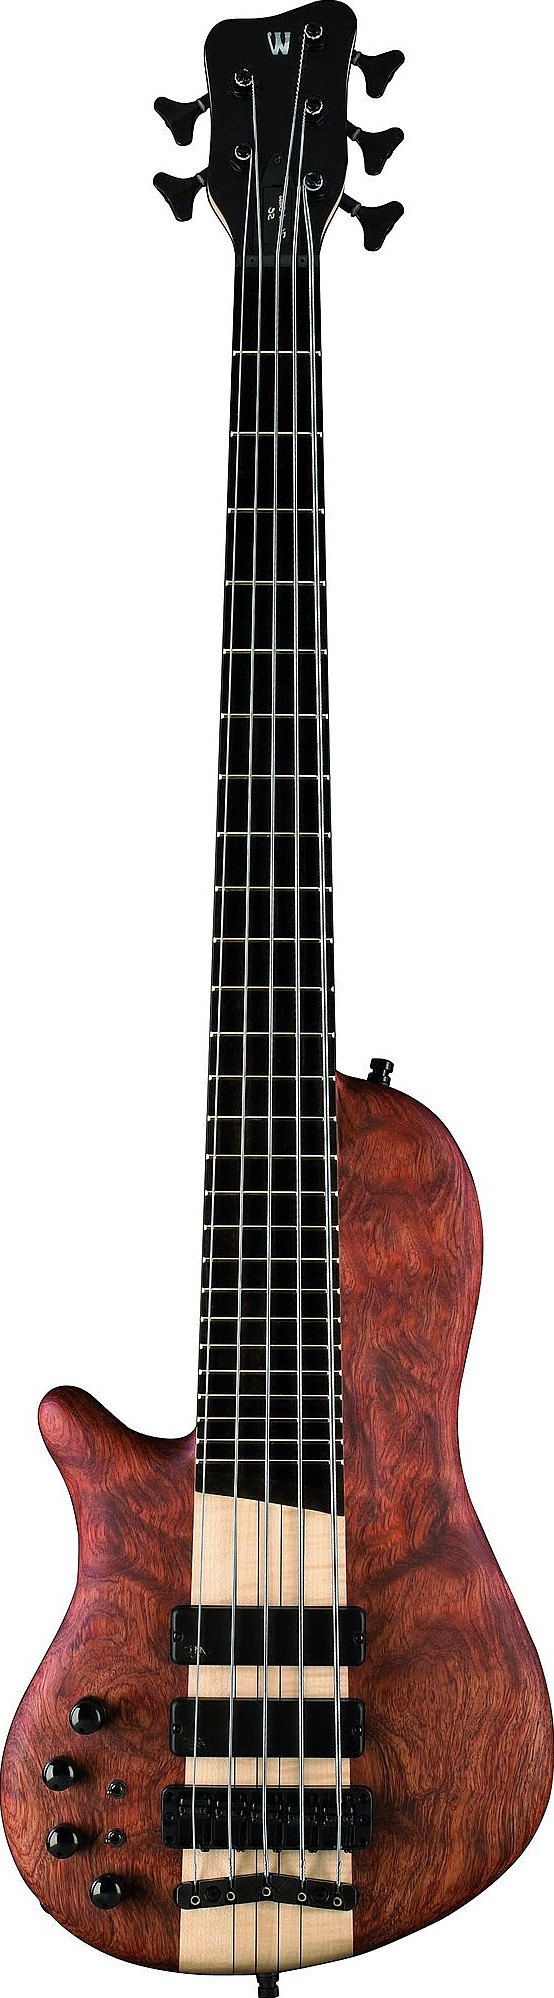 Thumb SC 5 Broadneck Left Handed by Warwick